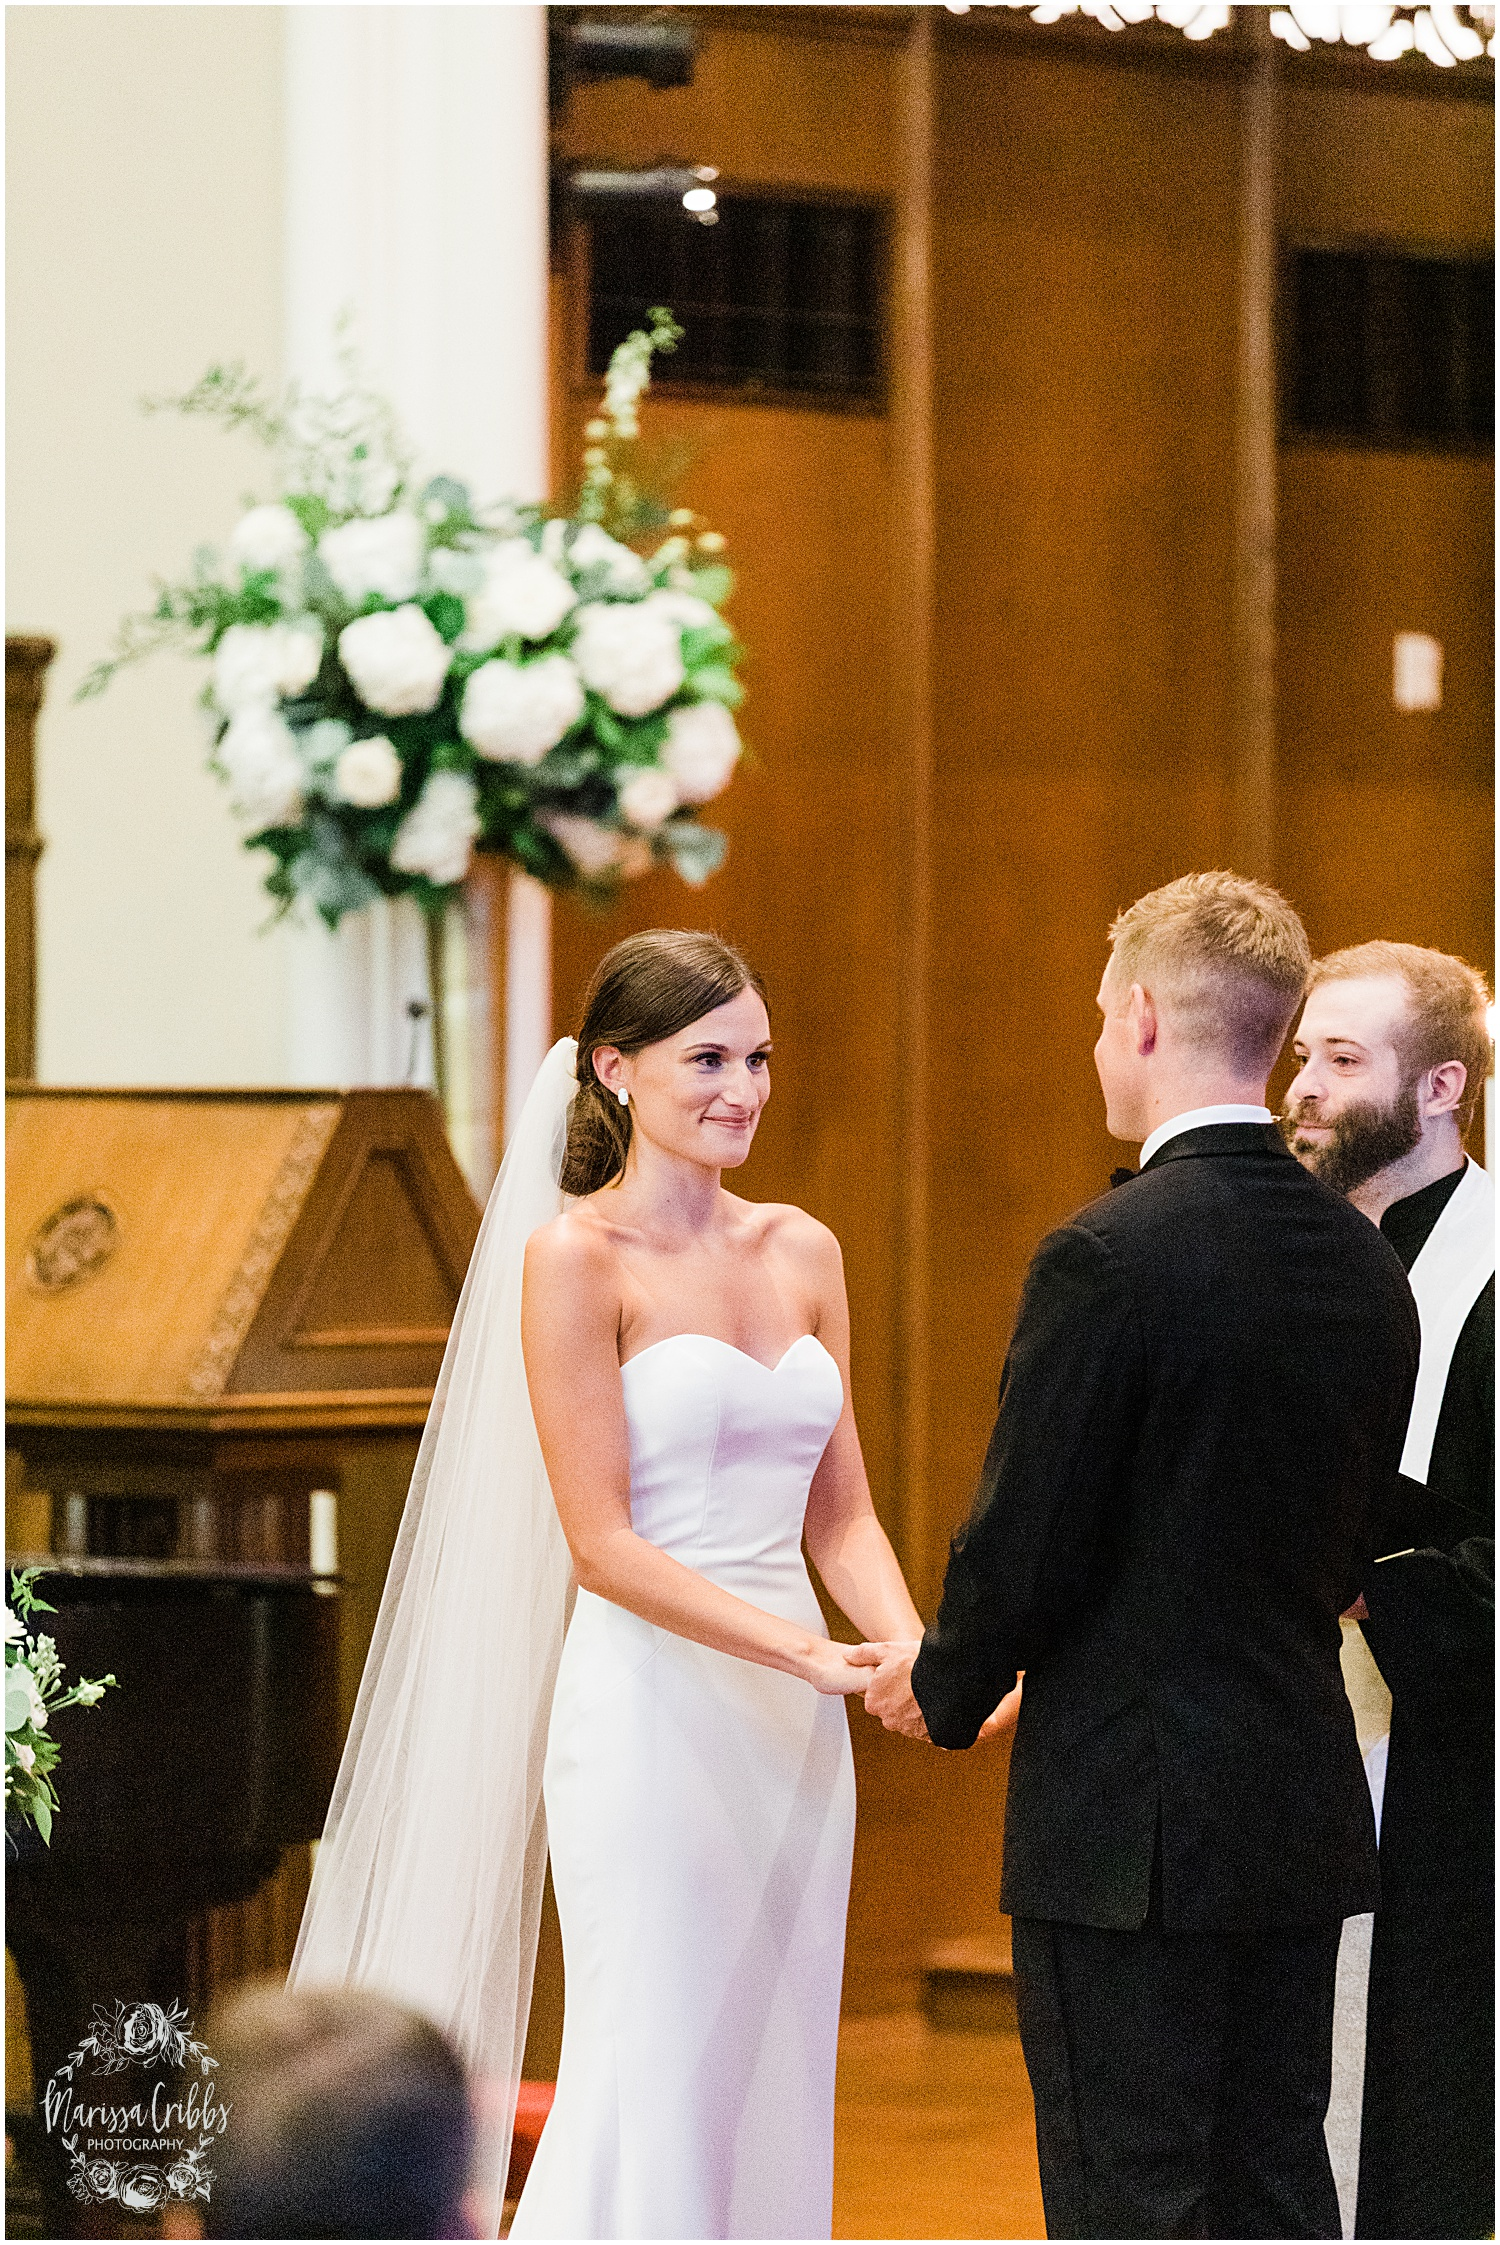 JOANNE & GEORGE MARRIED BLOG | MARISSA CRIBBS PHOTOGRAPHY | THE ABBOTT | KANSAS CITY WEDDING PHOTOS_9090.jpg